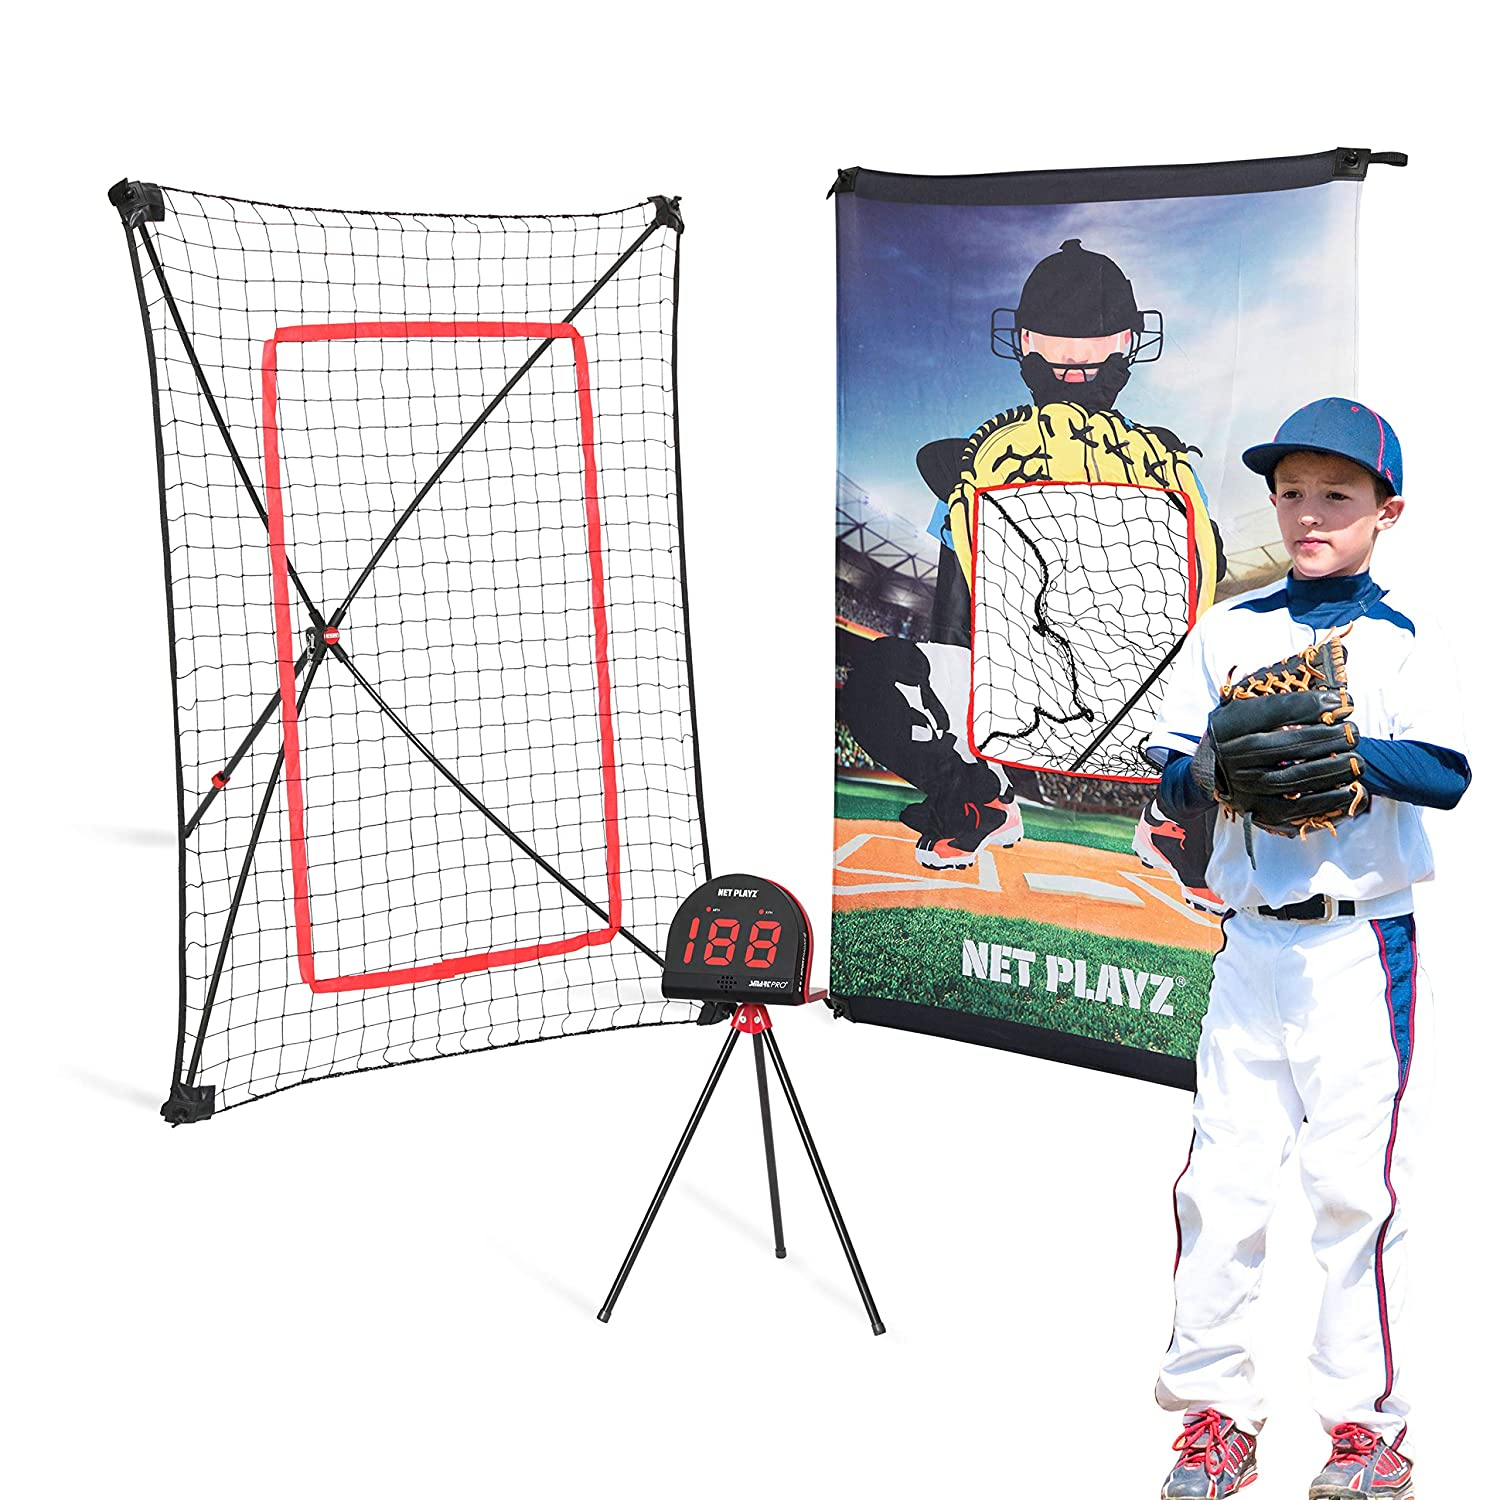 a0967b1478197 Net Playz Smart Baseball Trainer Combo with 1 set Sport Radar, 3-Feet by  5-Feet Pitchback Rebounder Net and Pitching Target Panel with Carry Bag /1  Pc ...